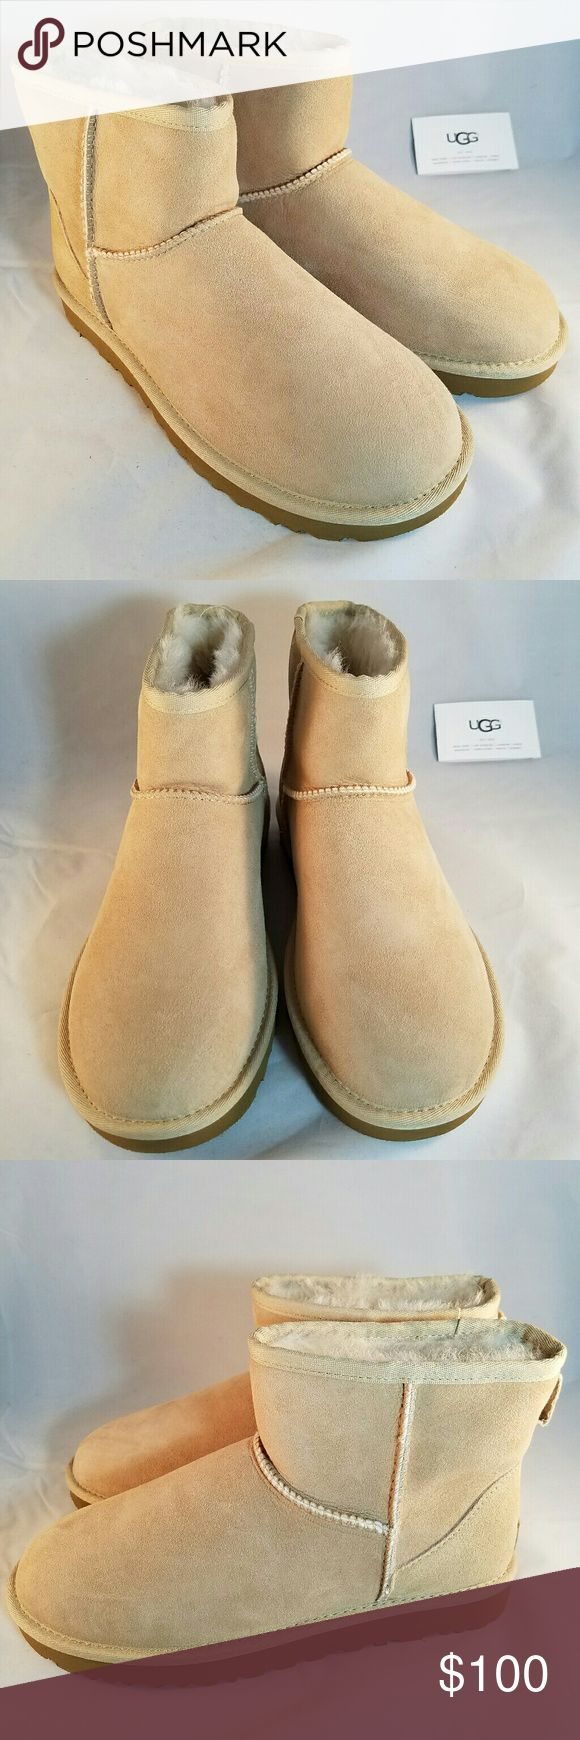 UGG Mini classic II Treadlite color: Sand The women's UGG Classic Mini II Boot is the perfect addition to your boots collection. This enhanced version of the Classic Mini Bootie is designed with Twinface Sheepskin uppers that are naturally soft, breathable, and regulate foot temperature in any weather condition. The pretreated Scotchgard technology allows for ultimate water and stain resistance, wicking away any moisture and keeping your feet dry. The updated Classic Mini II Boot is lined…